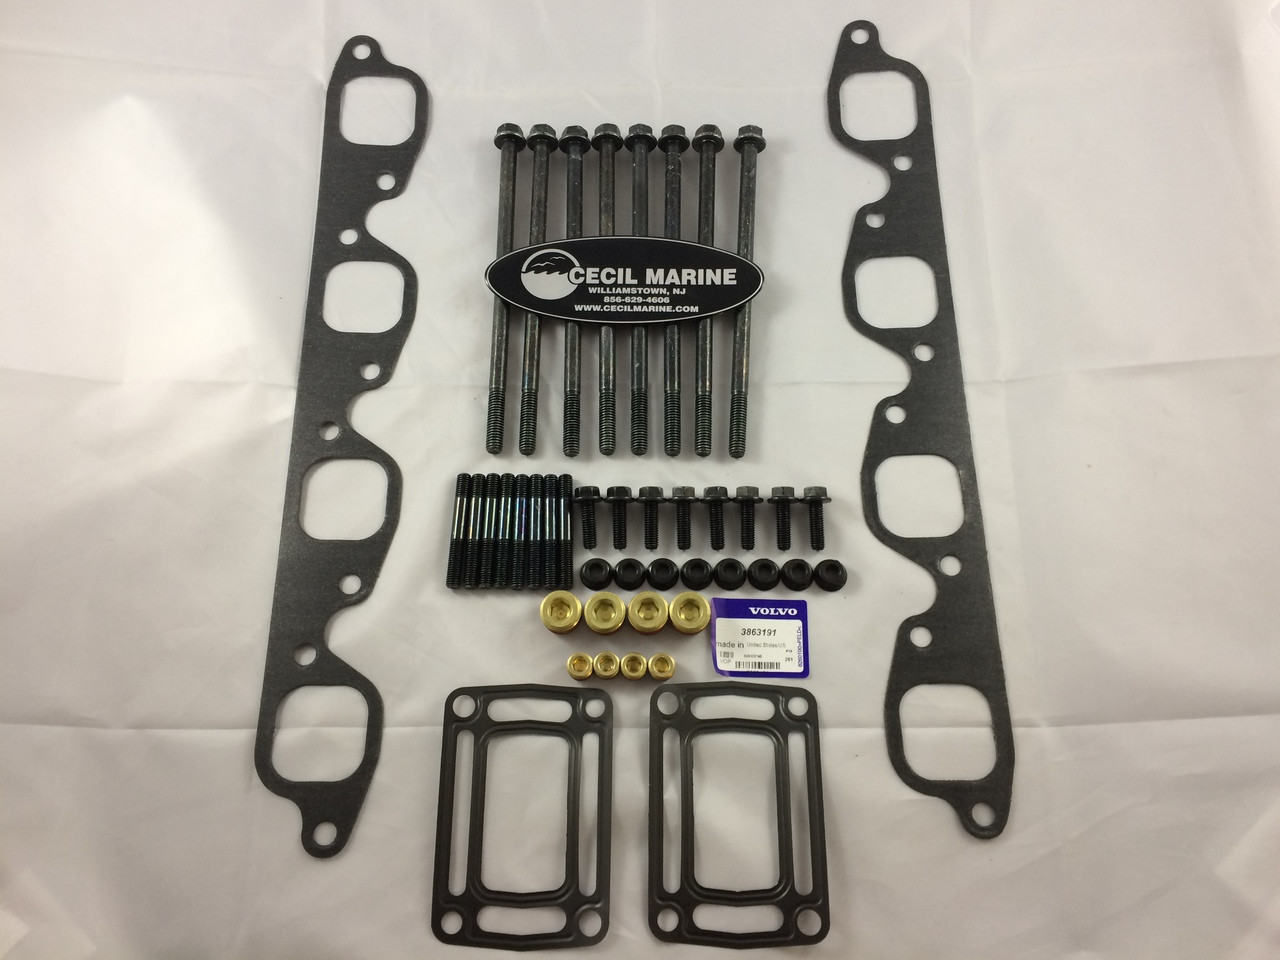 $1872.00 & FREE SHIPPING GENUINE VOLVO PENTA 8.1 MANIFOLD REPLACEMENT KIT - 3847640  * In Stock & Ready To Ship!